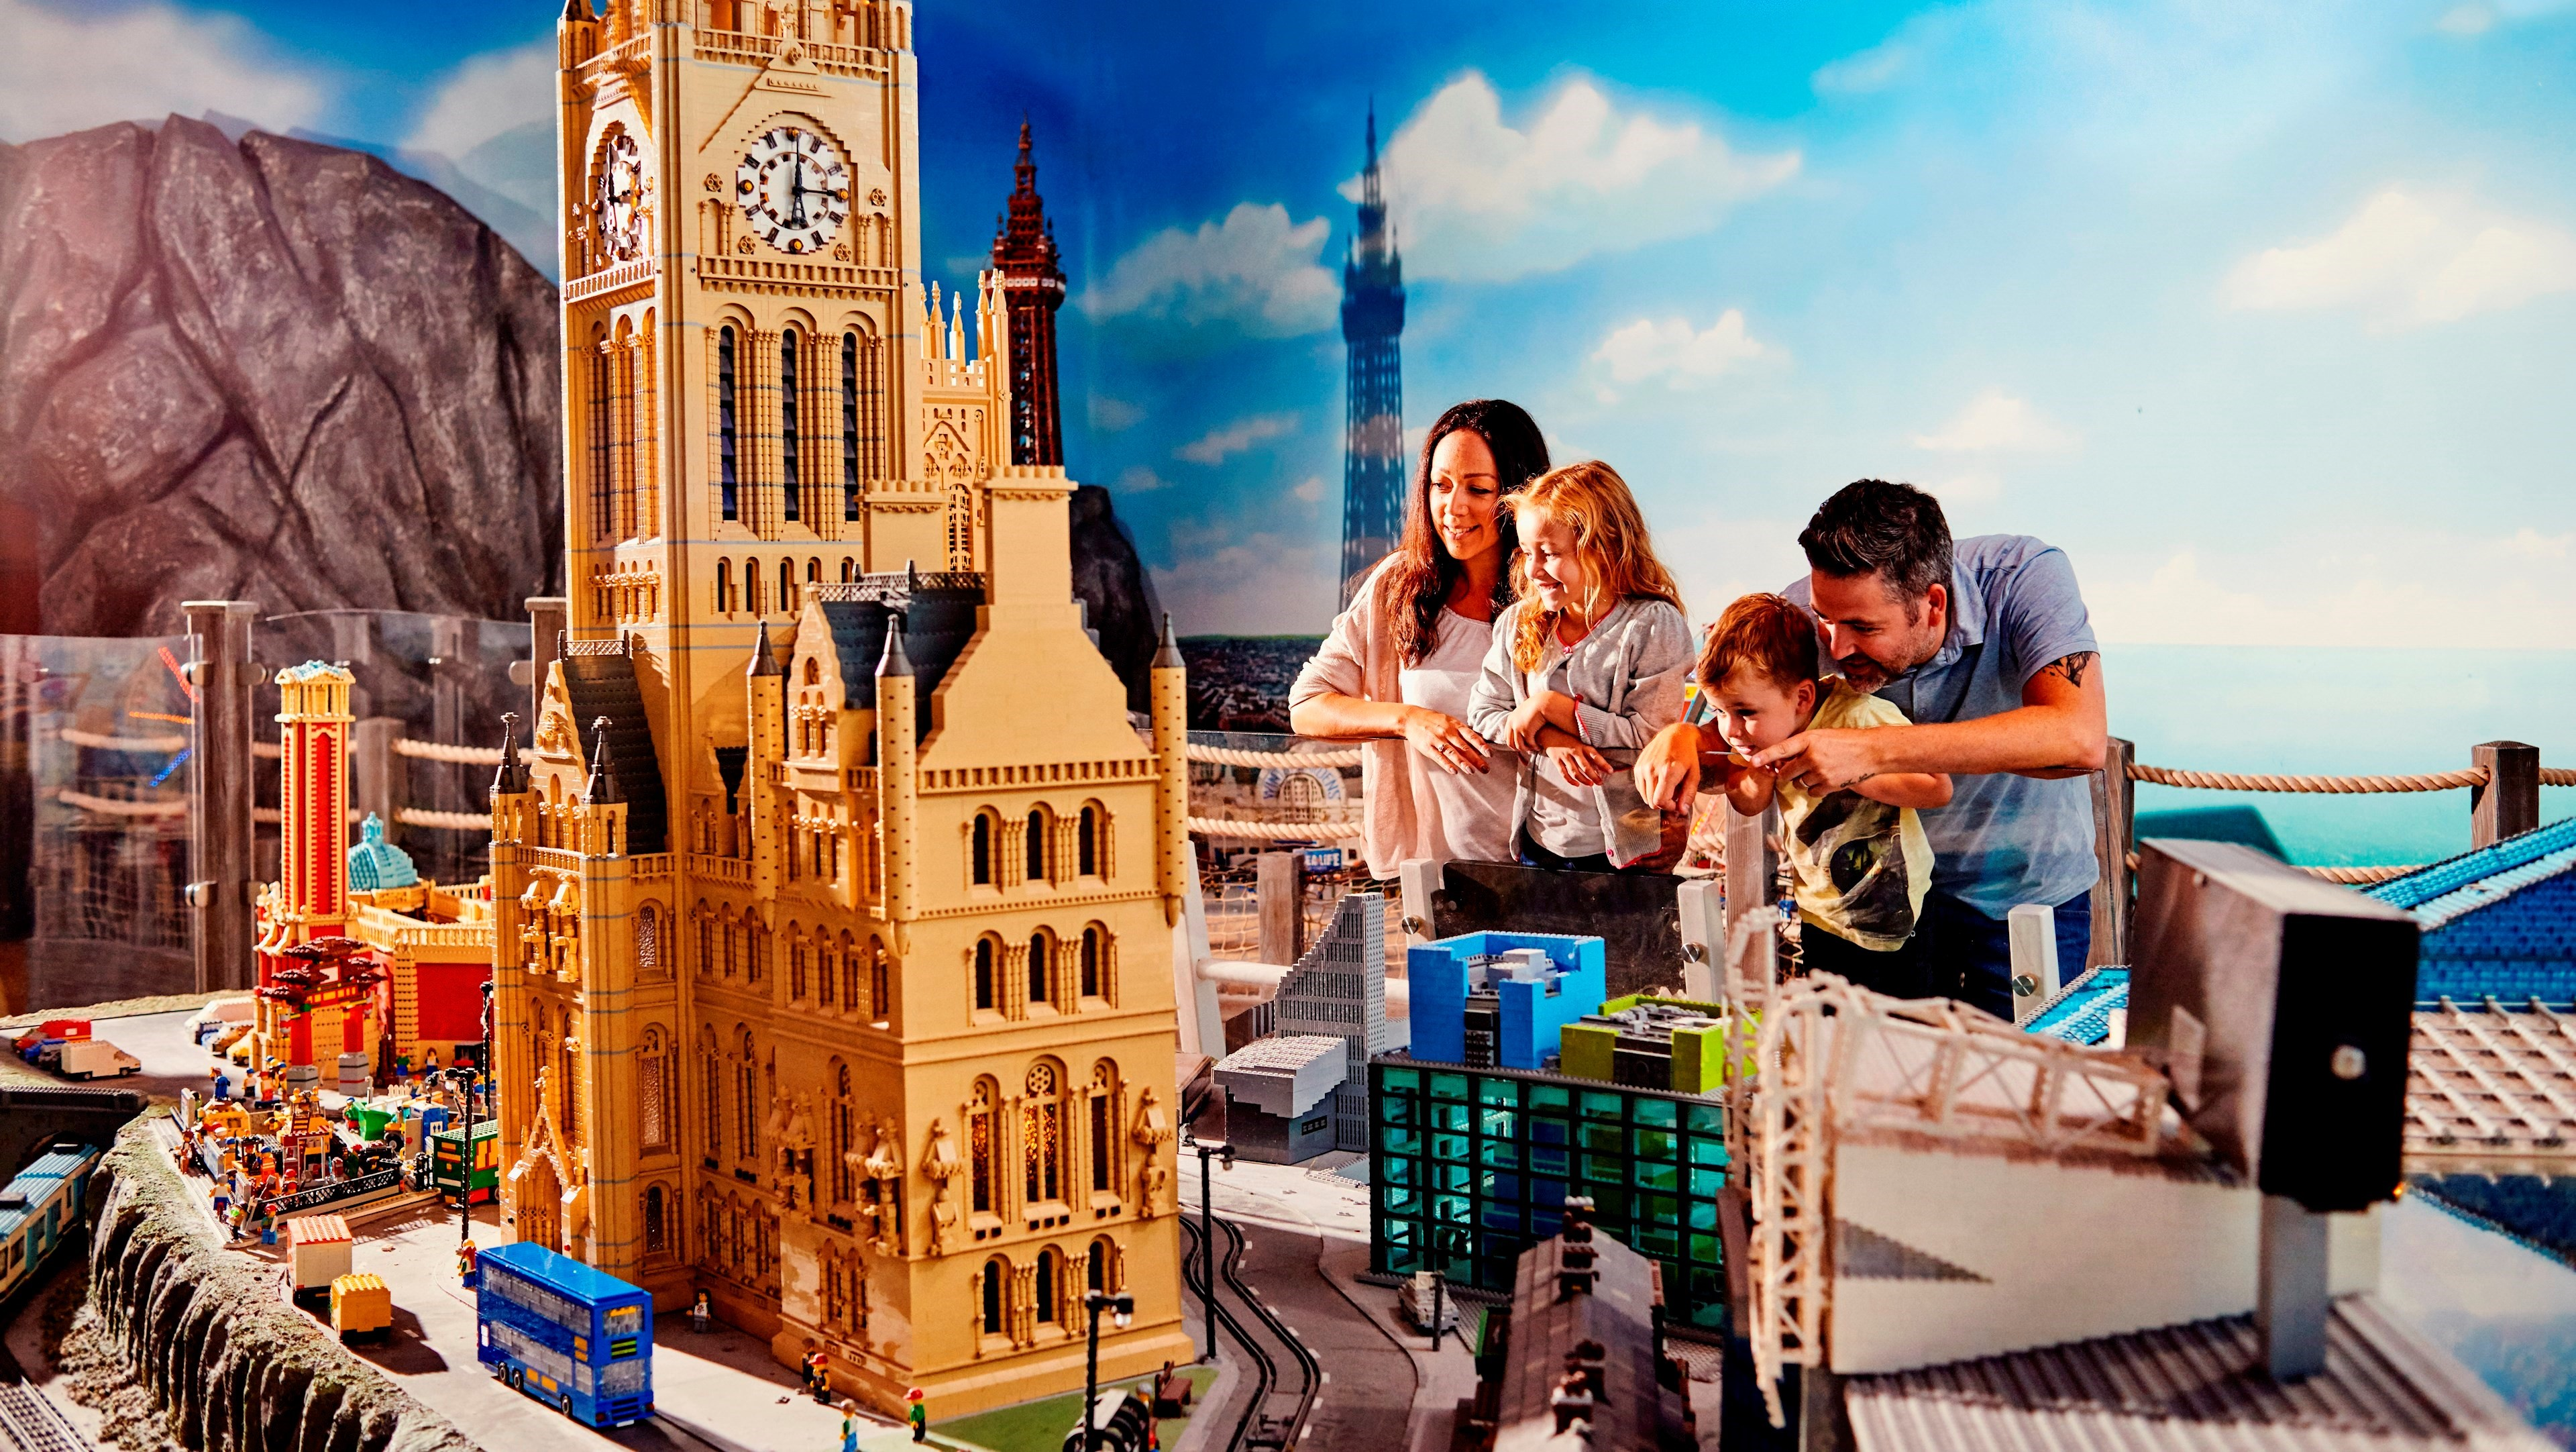 LEGOLAND Discovery Center Tokyo   The Expat's Guide to Japan